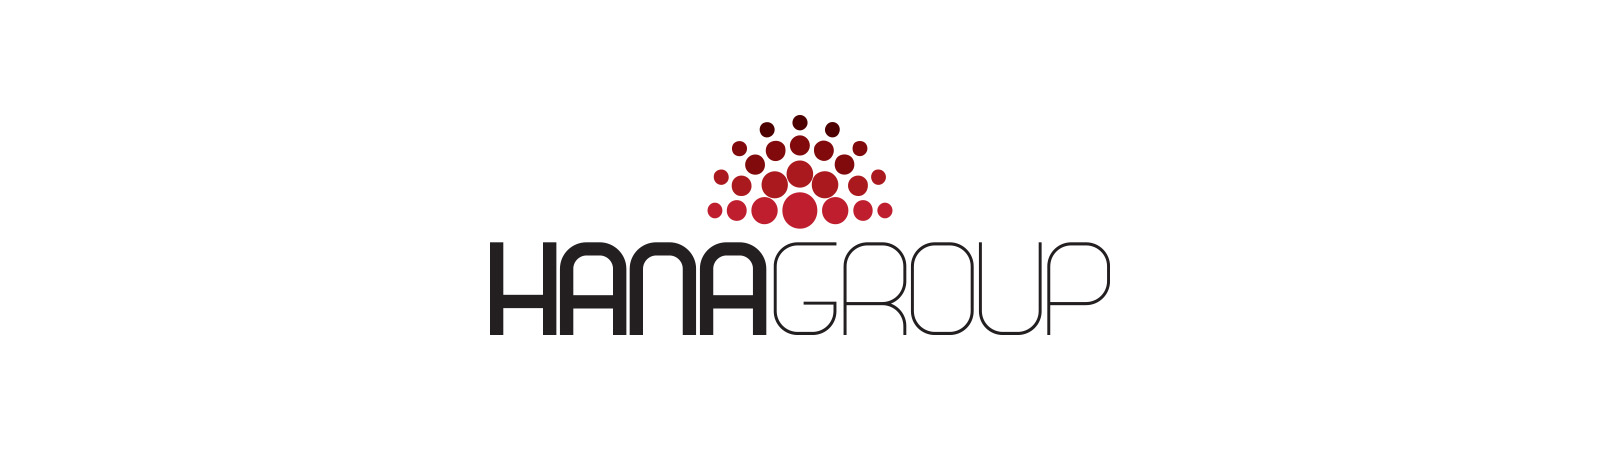 hana group consumer sector ta a private equity firm